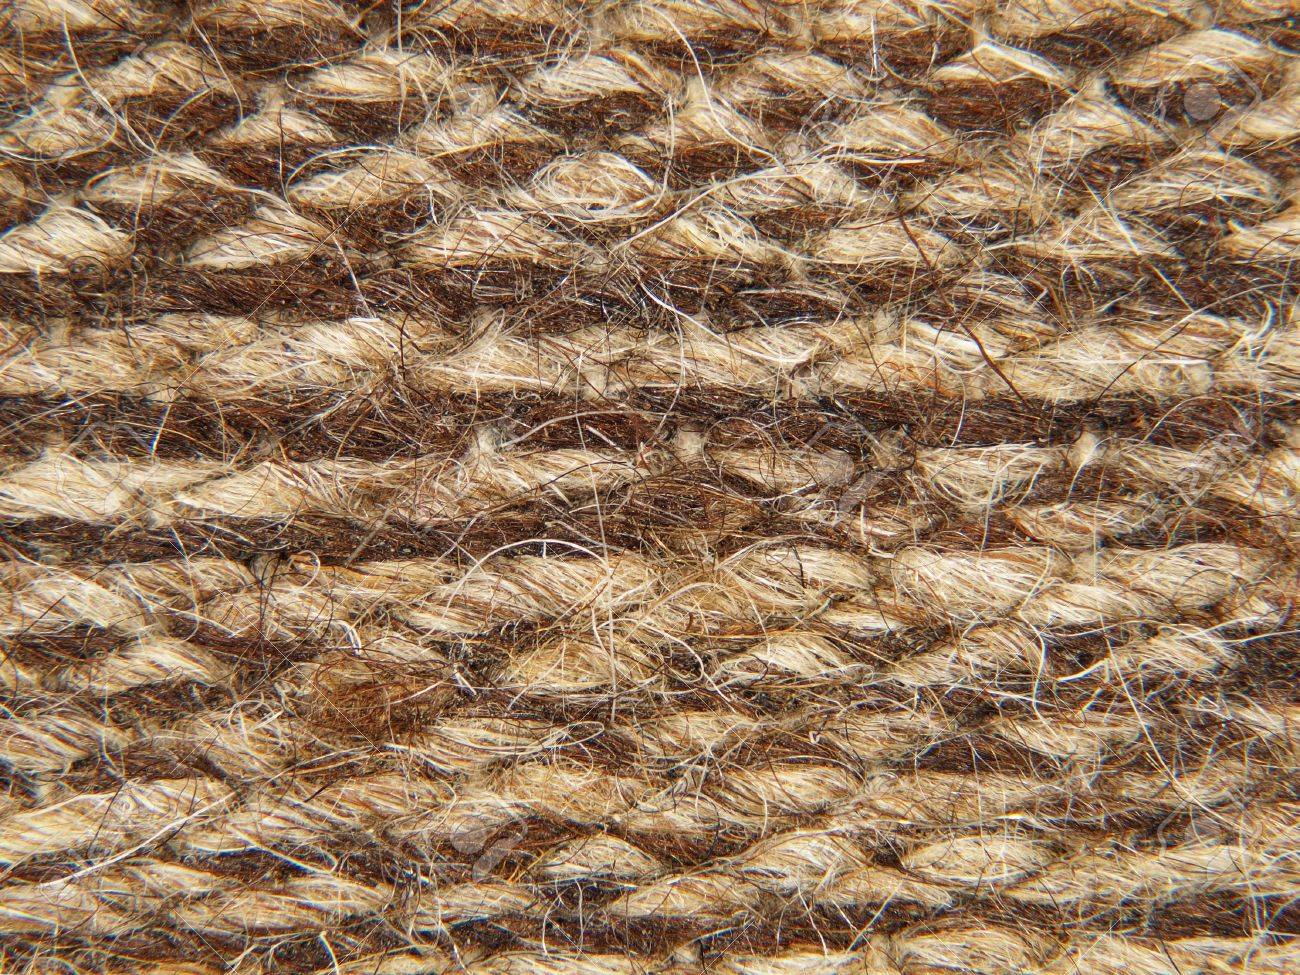 Rough Knit Camel Wool Fabric Texture Pattern Taken Closeup As ...